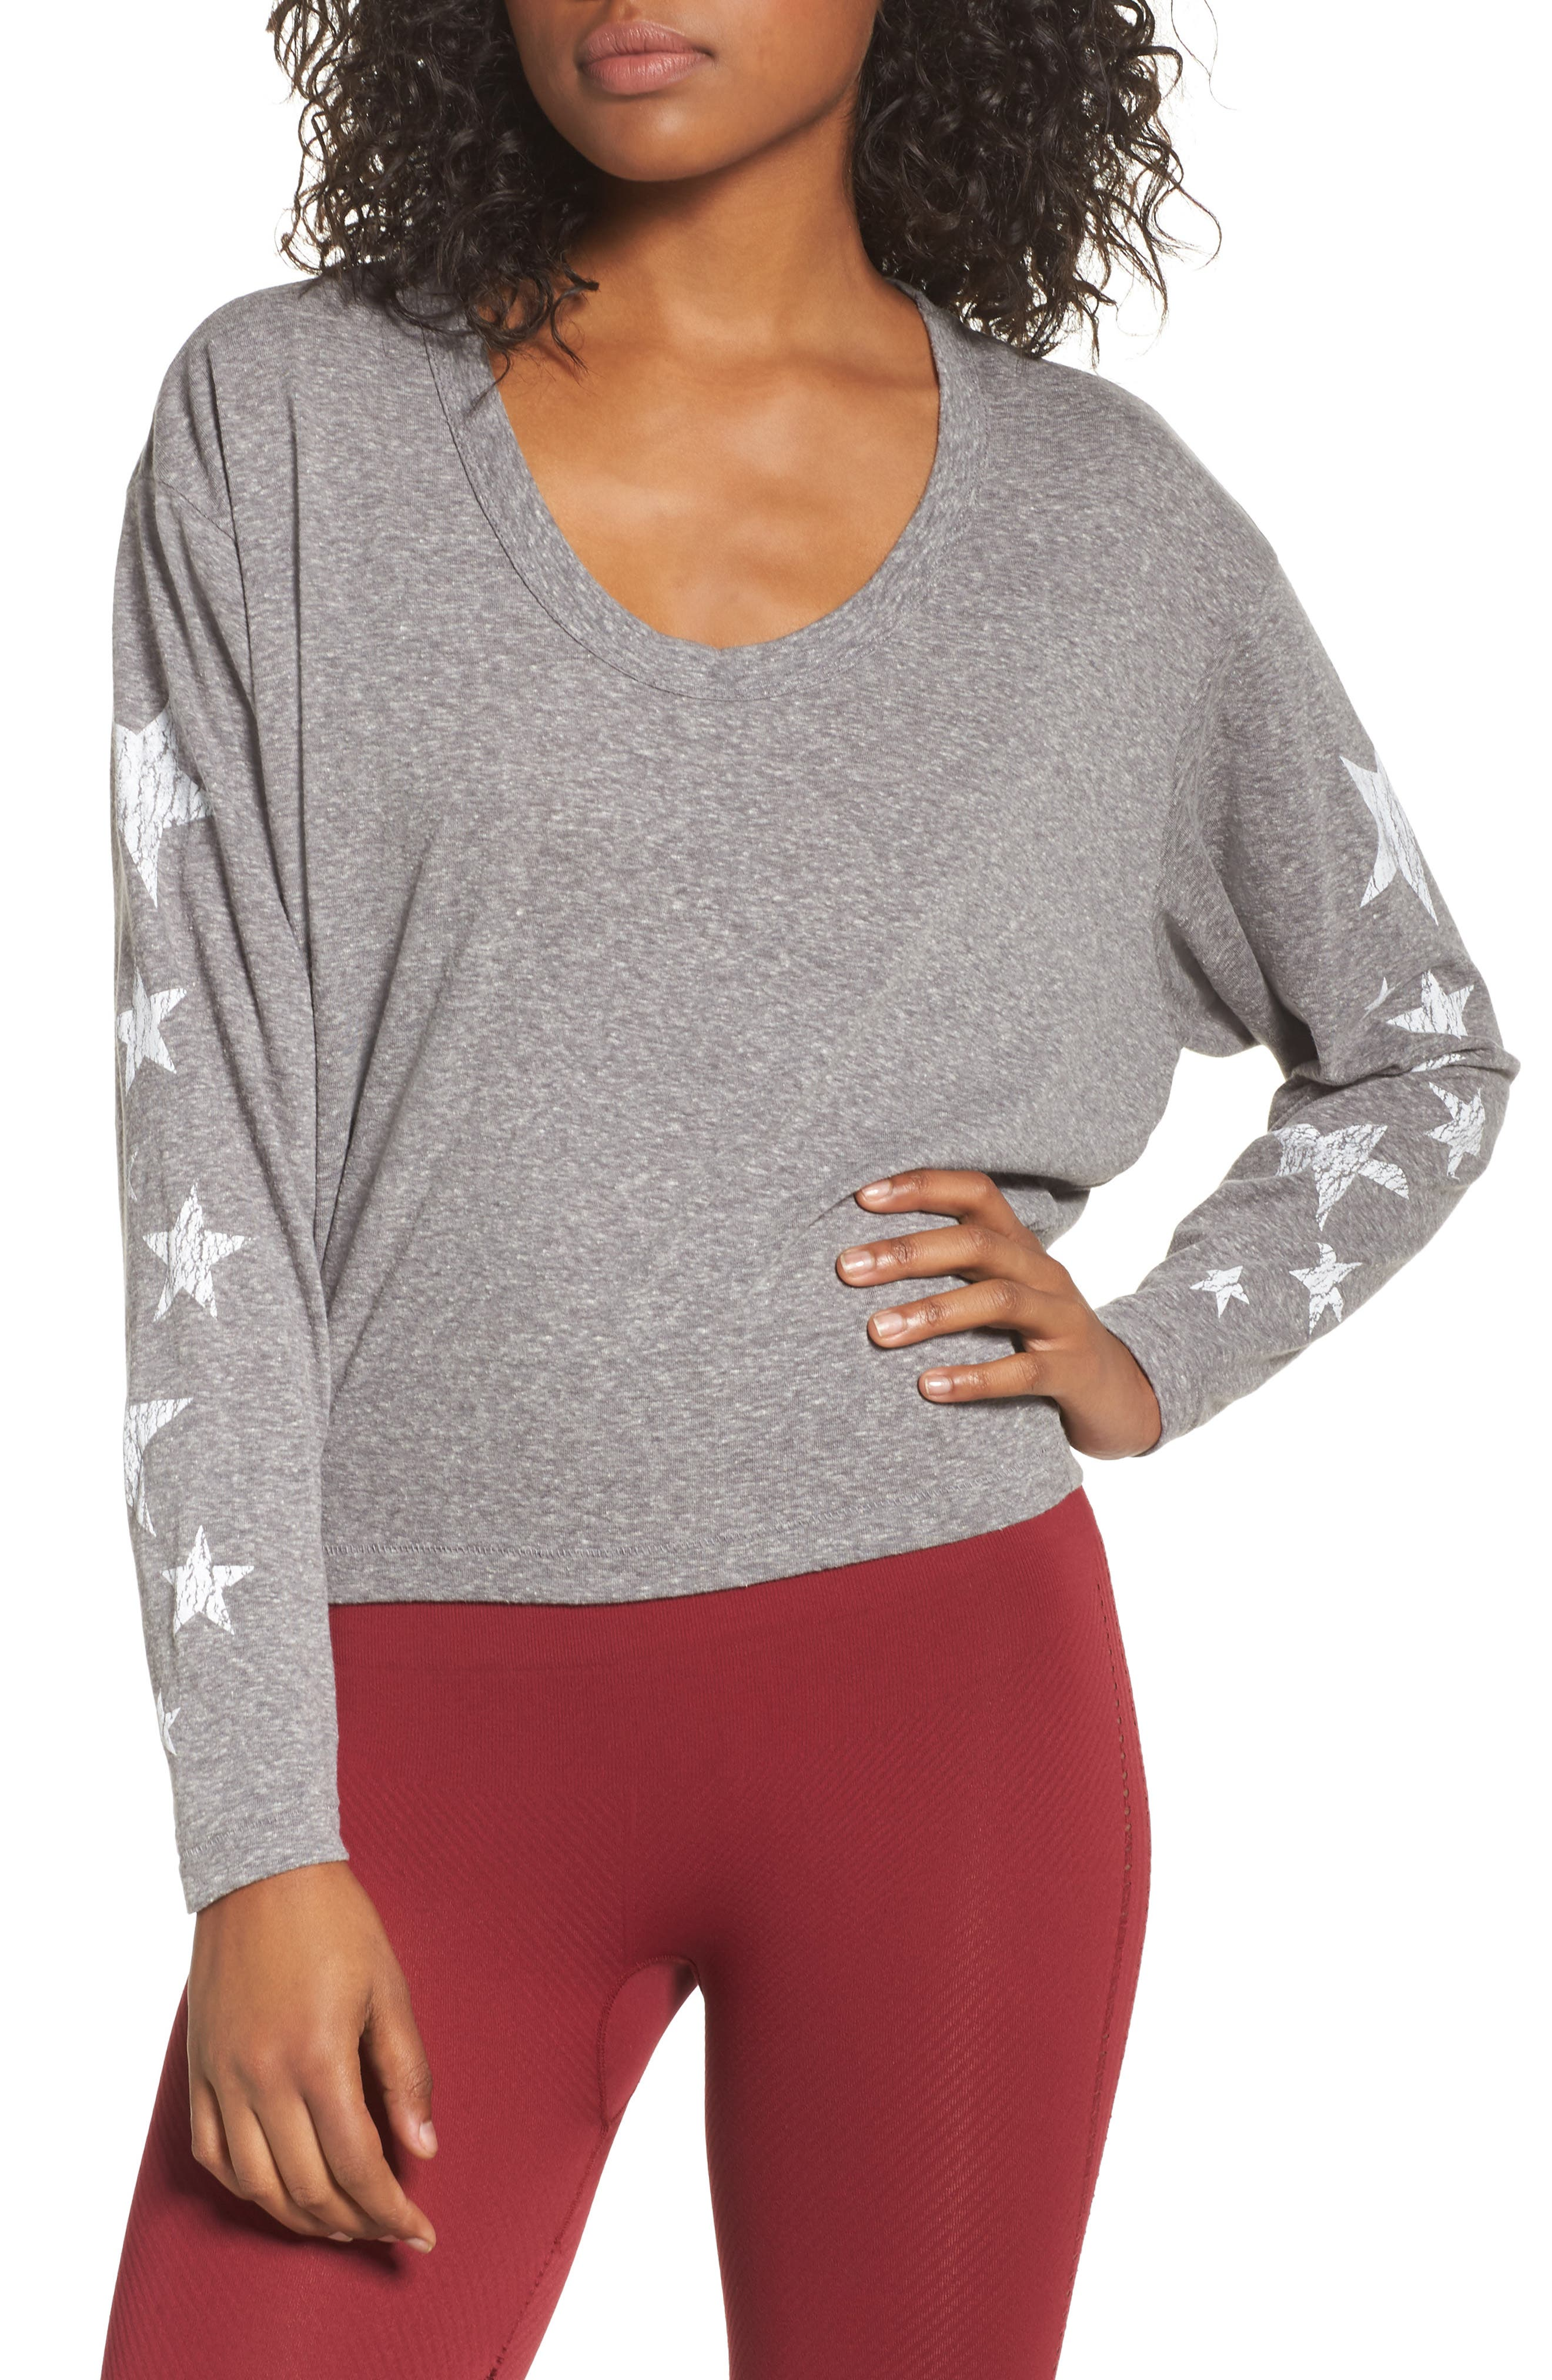 Free People Melrose Star Graphic Top,                             Main thumbnail 1, color,                             Grey